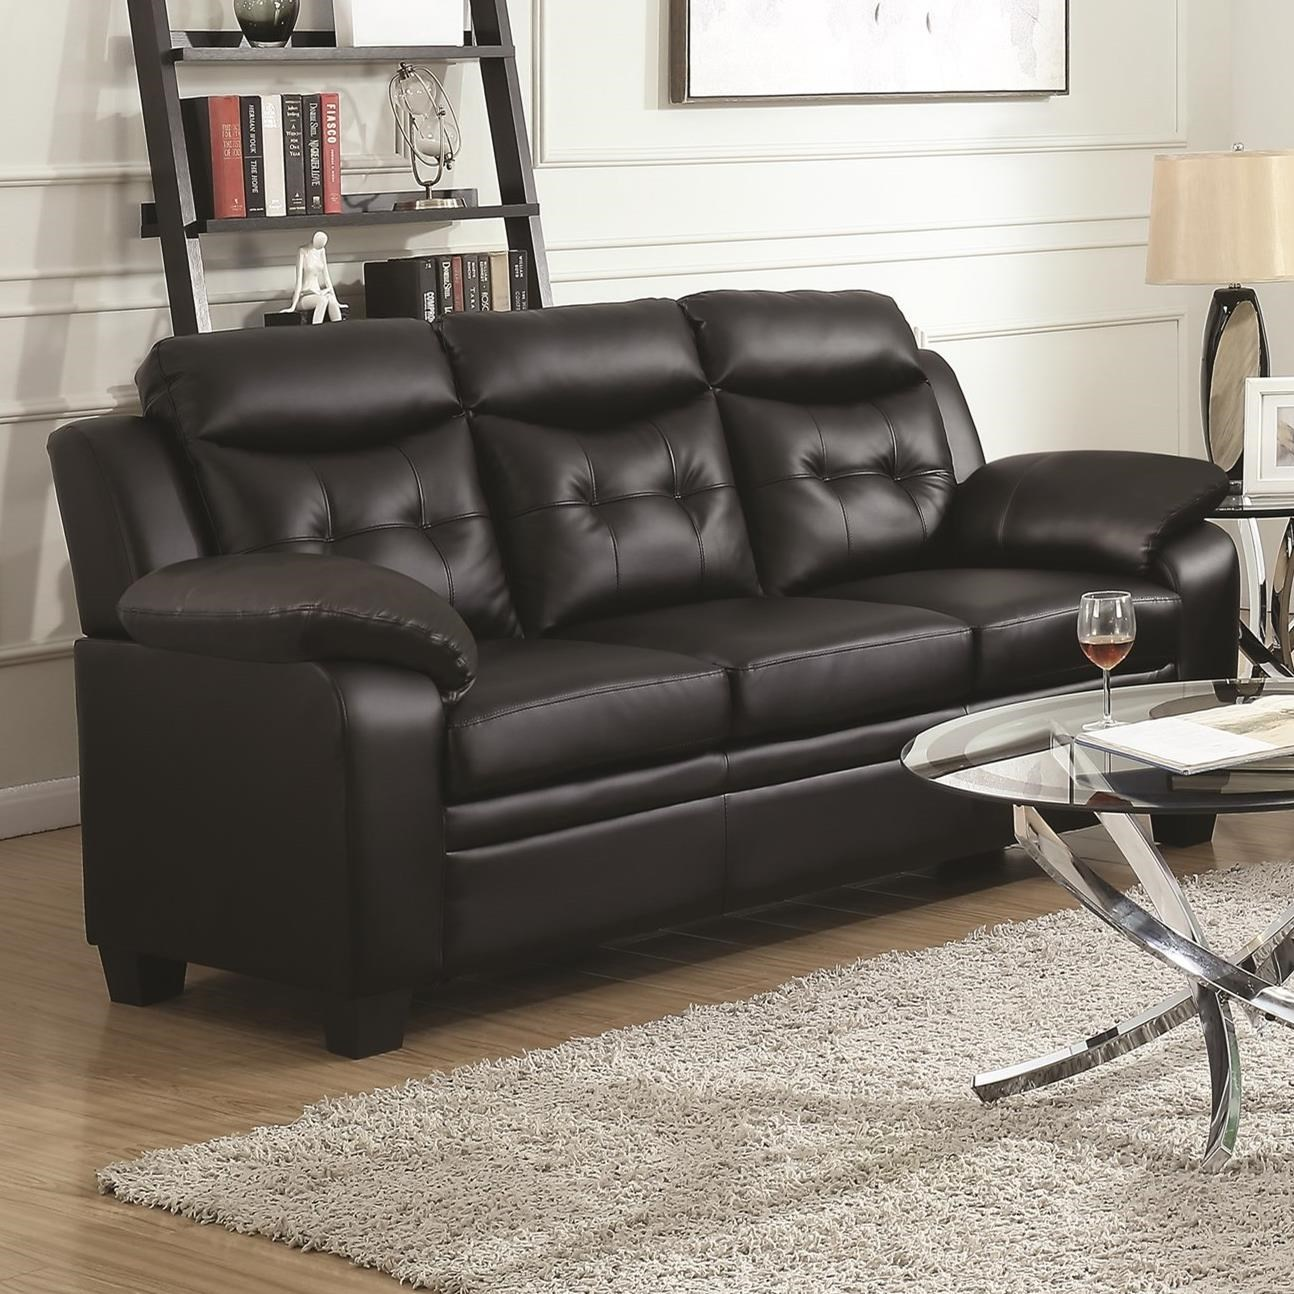 Finley Sofa by Coaster at Northeast Factory Direct